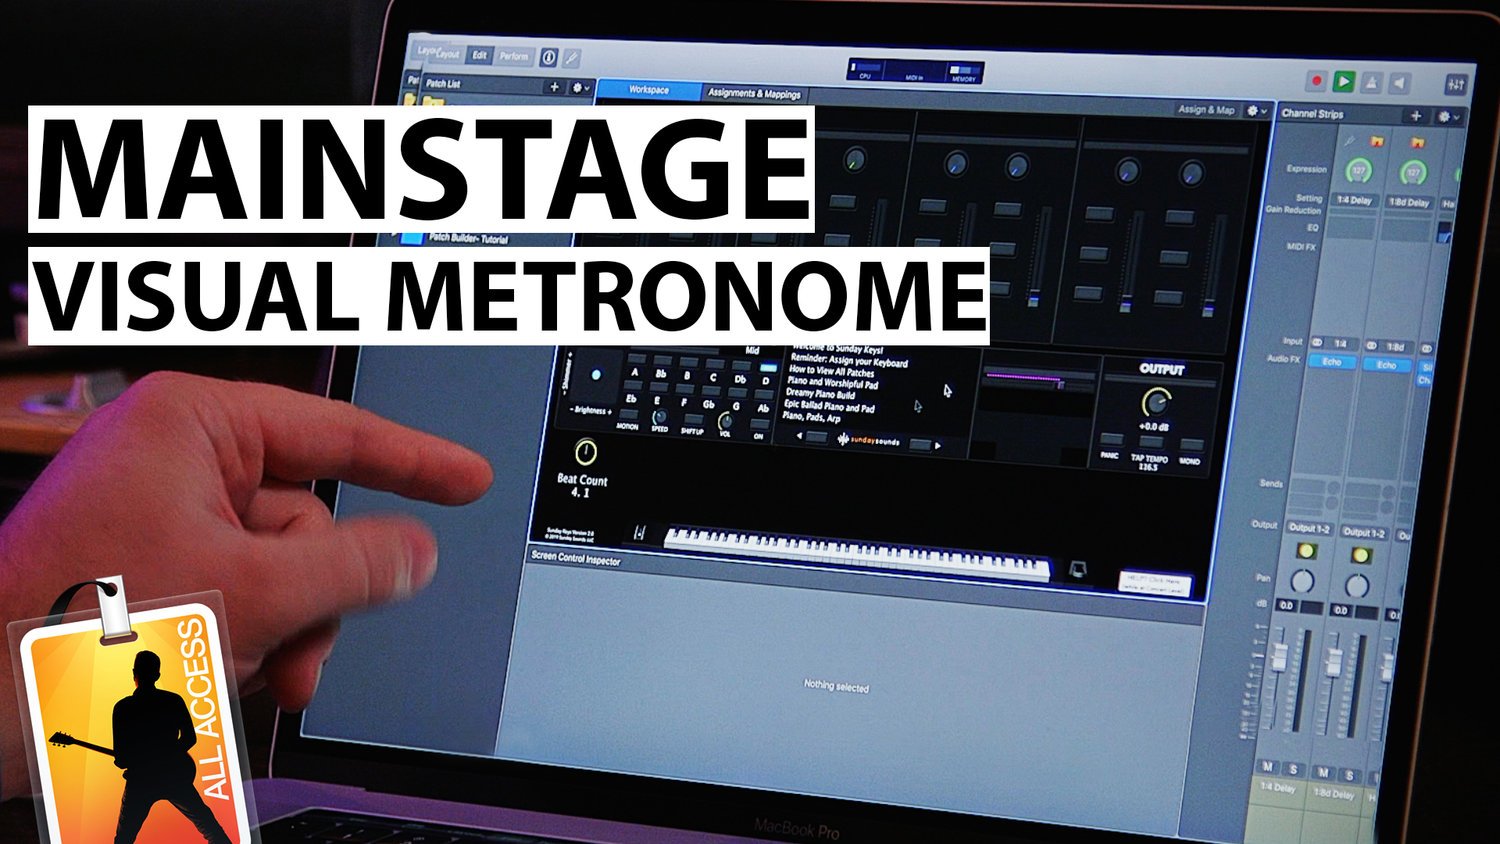 MainStage Tutorial: Creating a Visual Metronome in MainStage